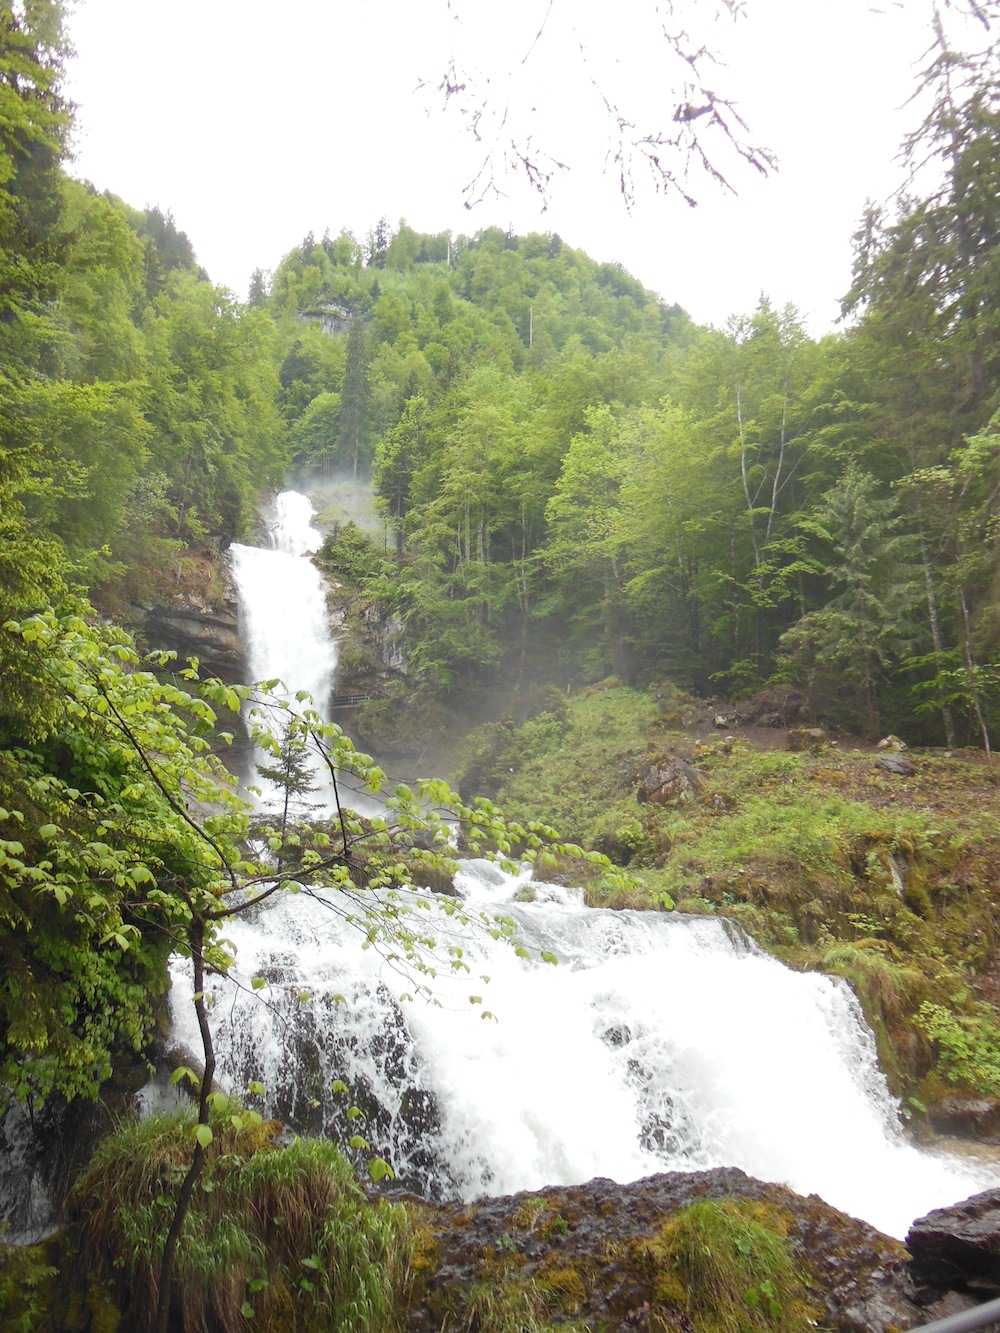 Lots to see along the way, especially Giessbach Waterfall